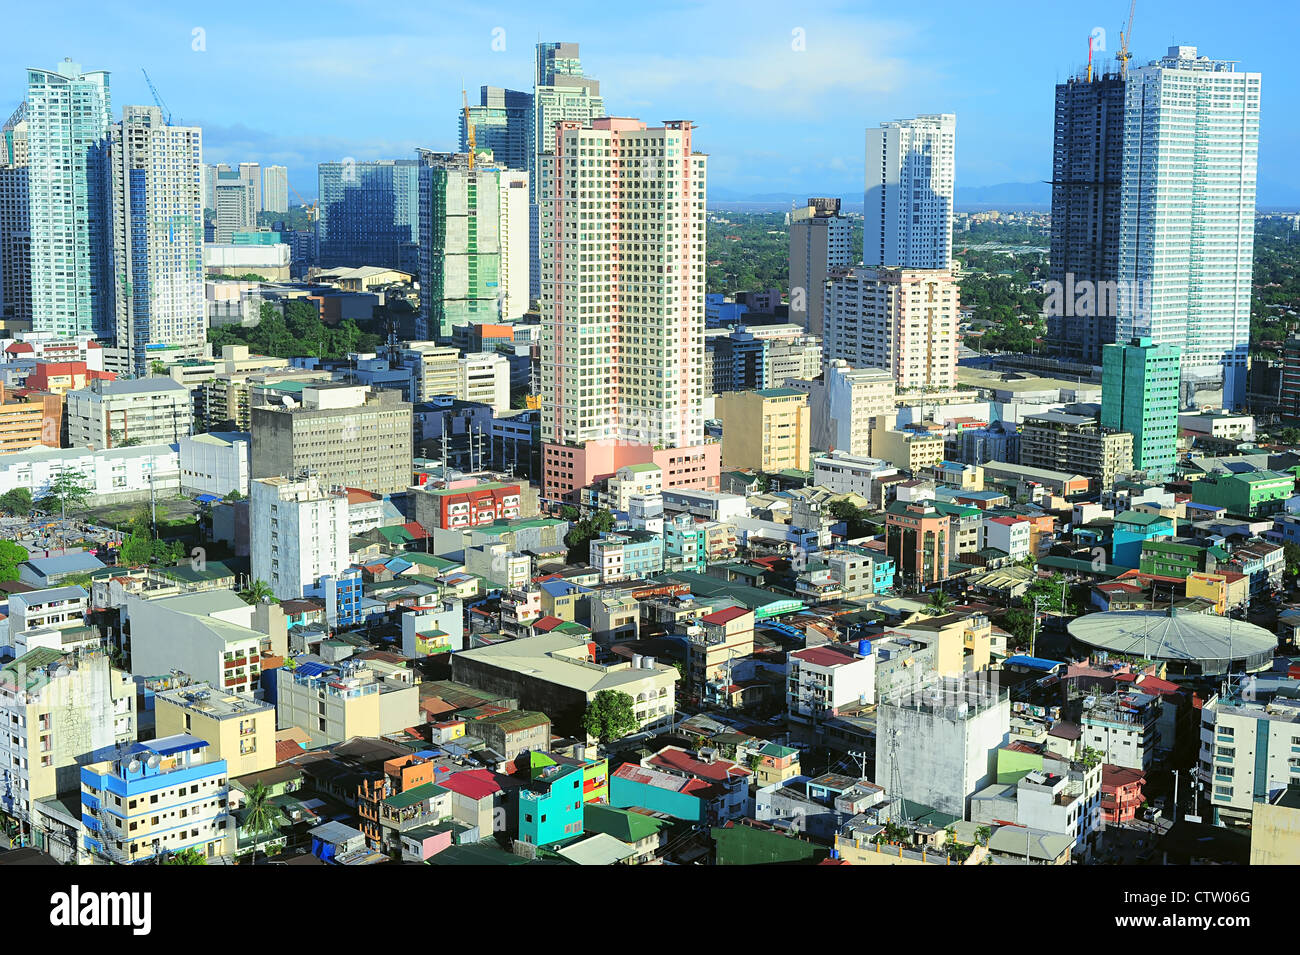 Aerial view on Makati - is one of the 17 cities that make up Metro Manila. Philippines - Stock Image